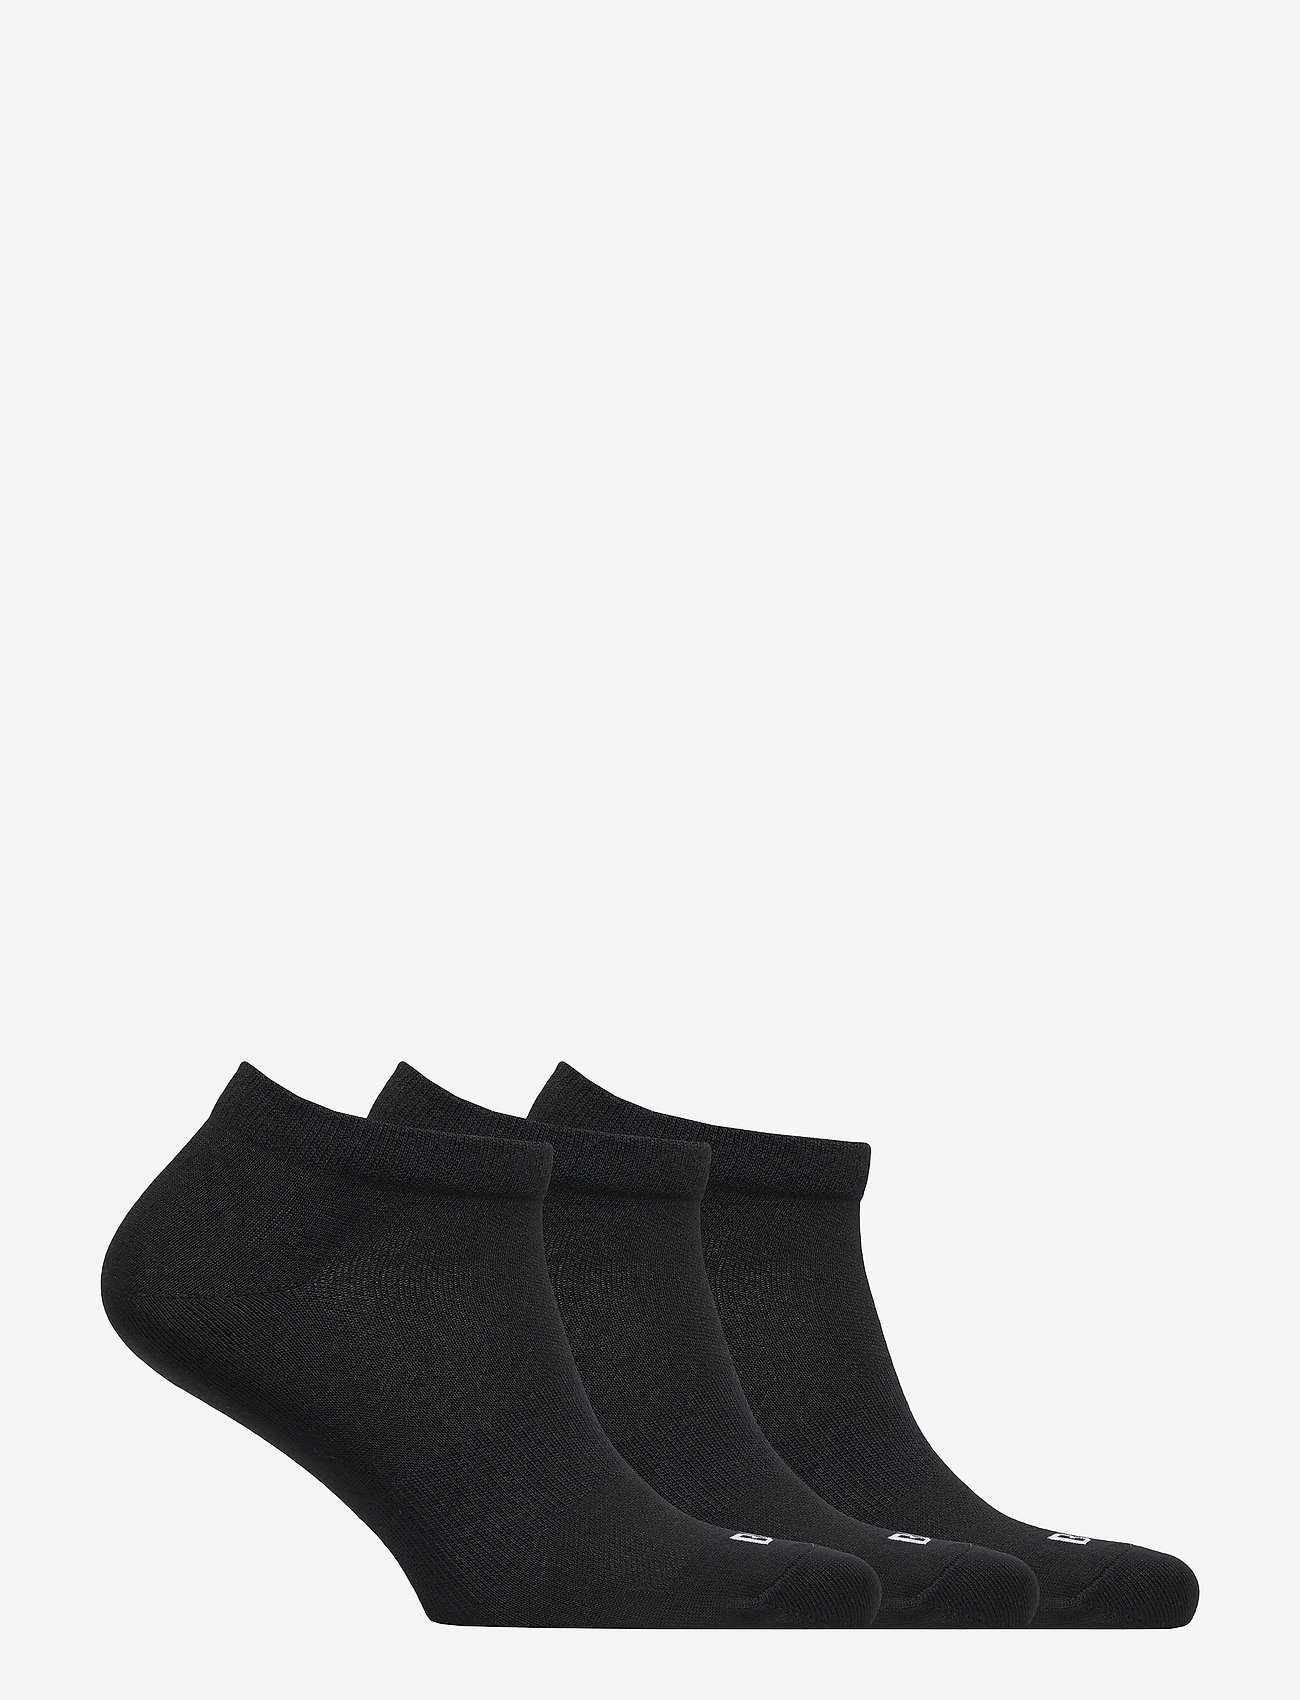 Bula - SAFE SOCK 3PK - reguläre strümpfe - black - 1